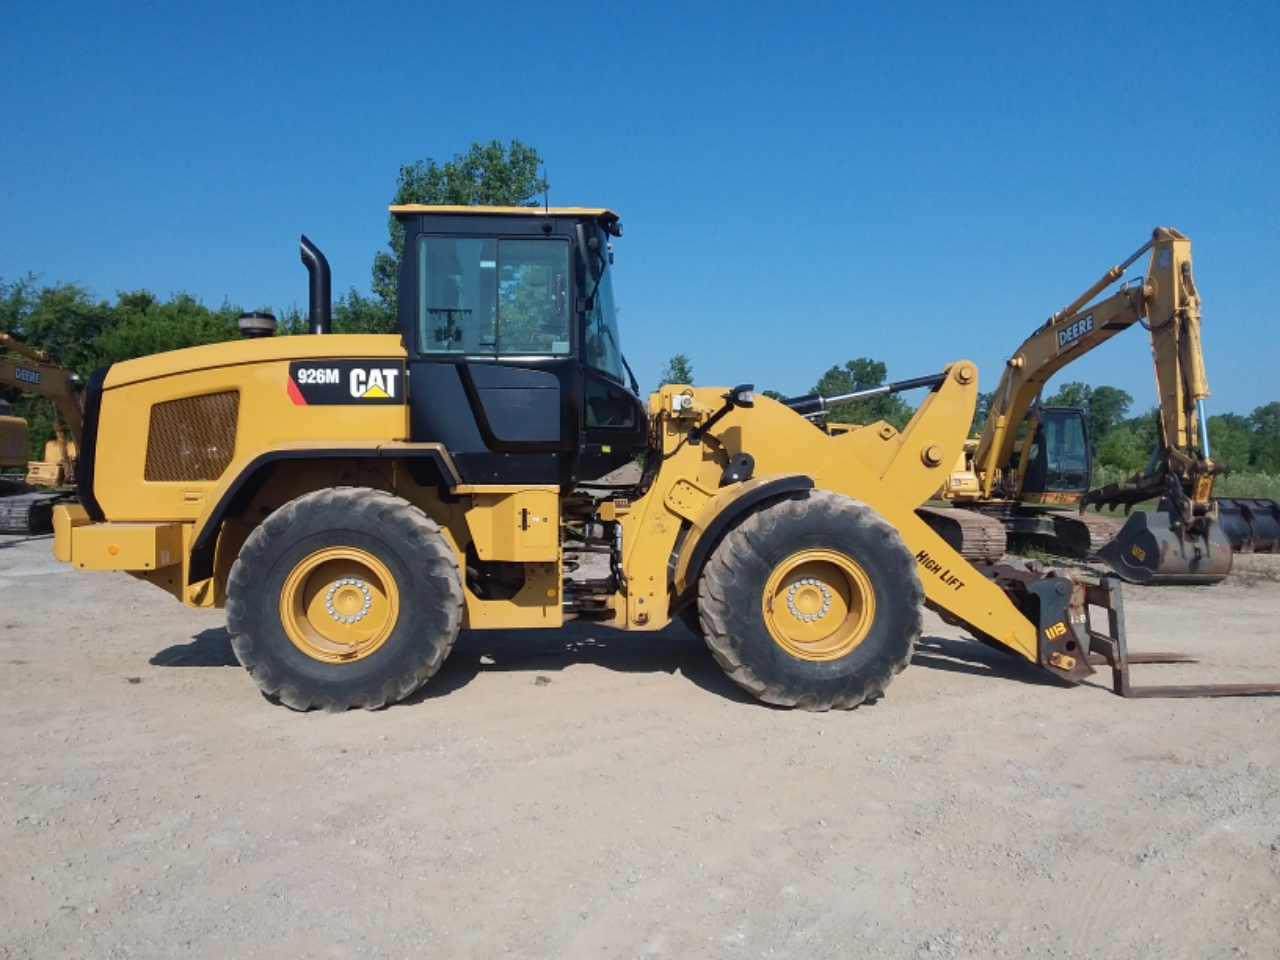 2016 Caterpillar 926M Image 10